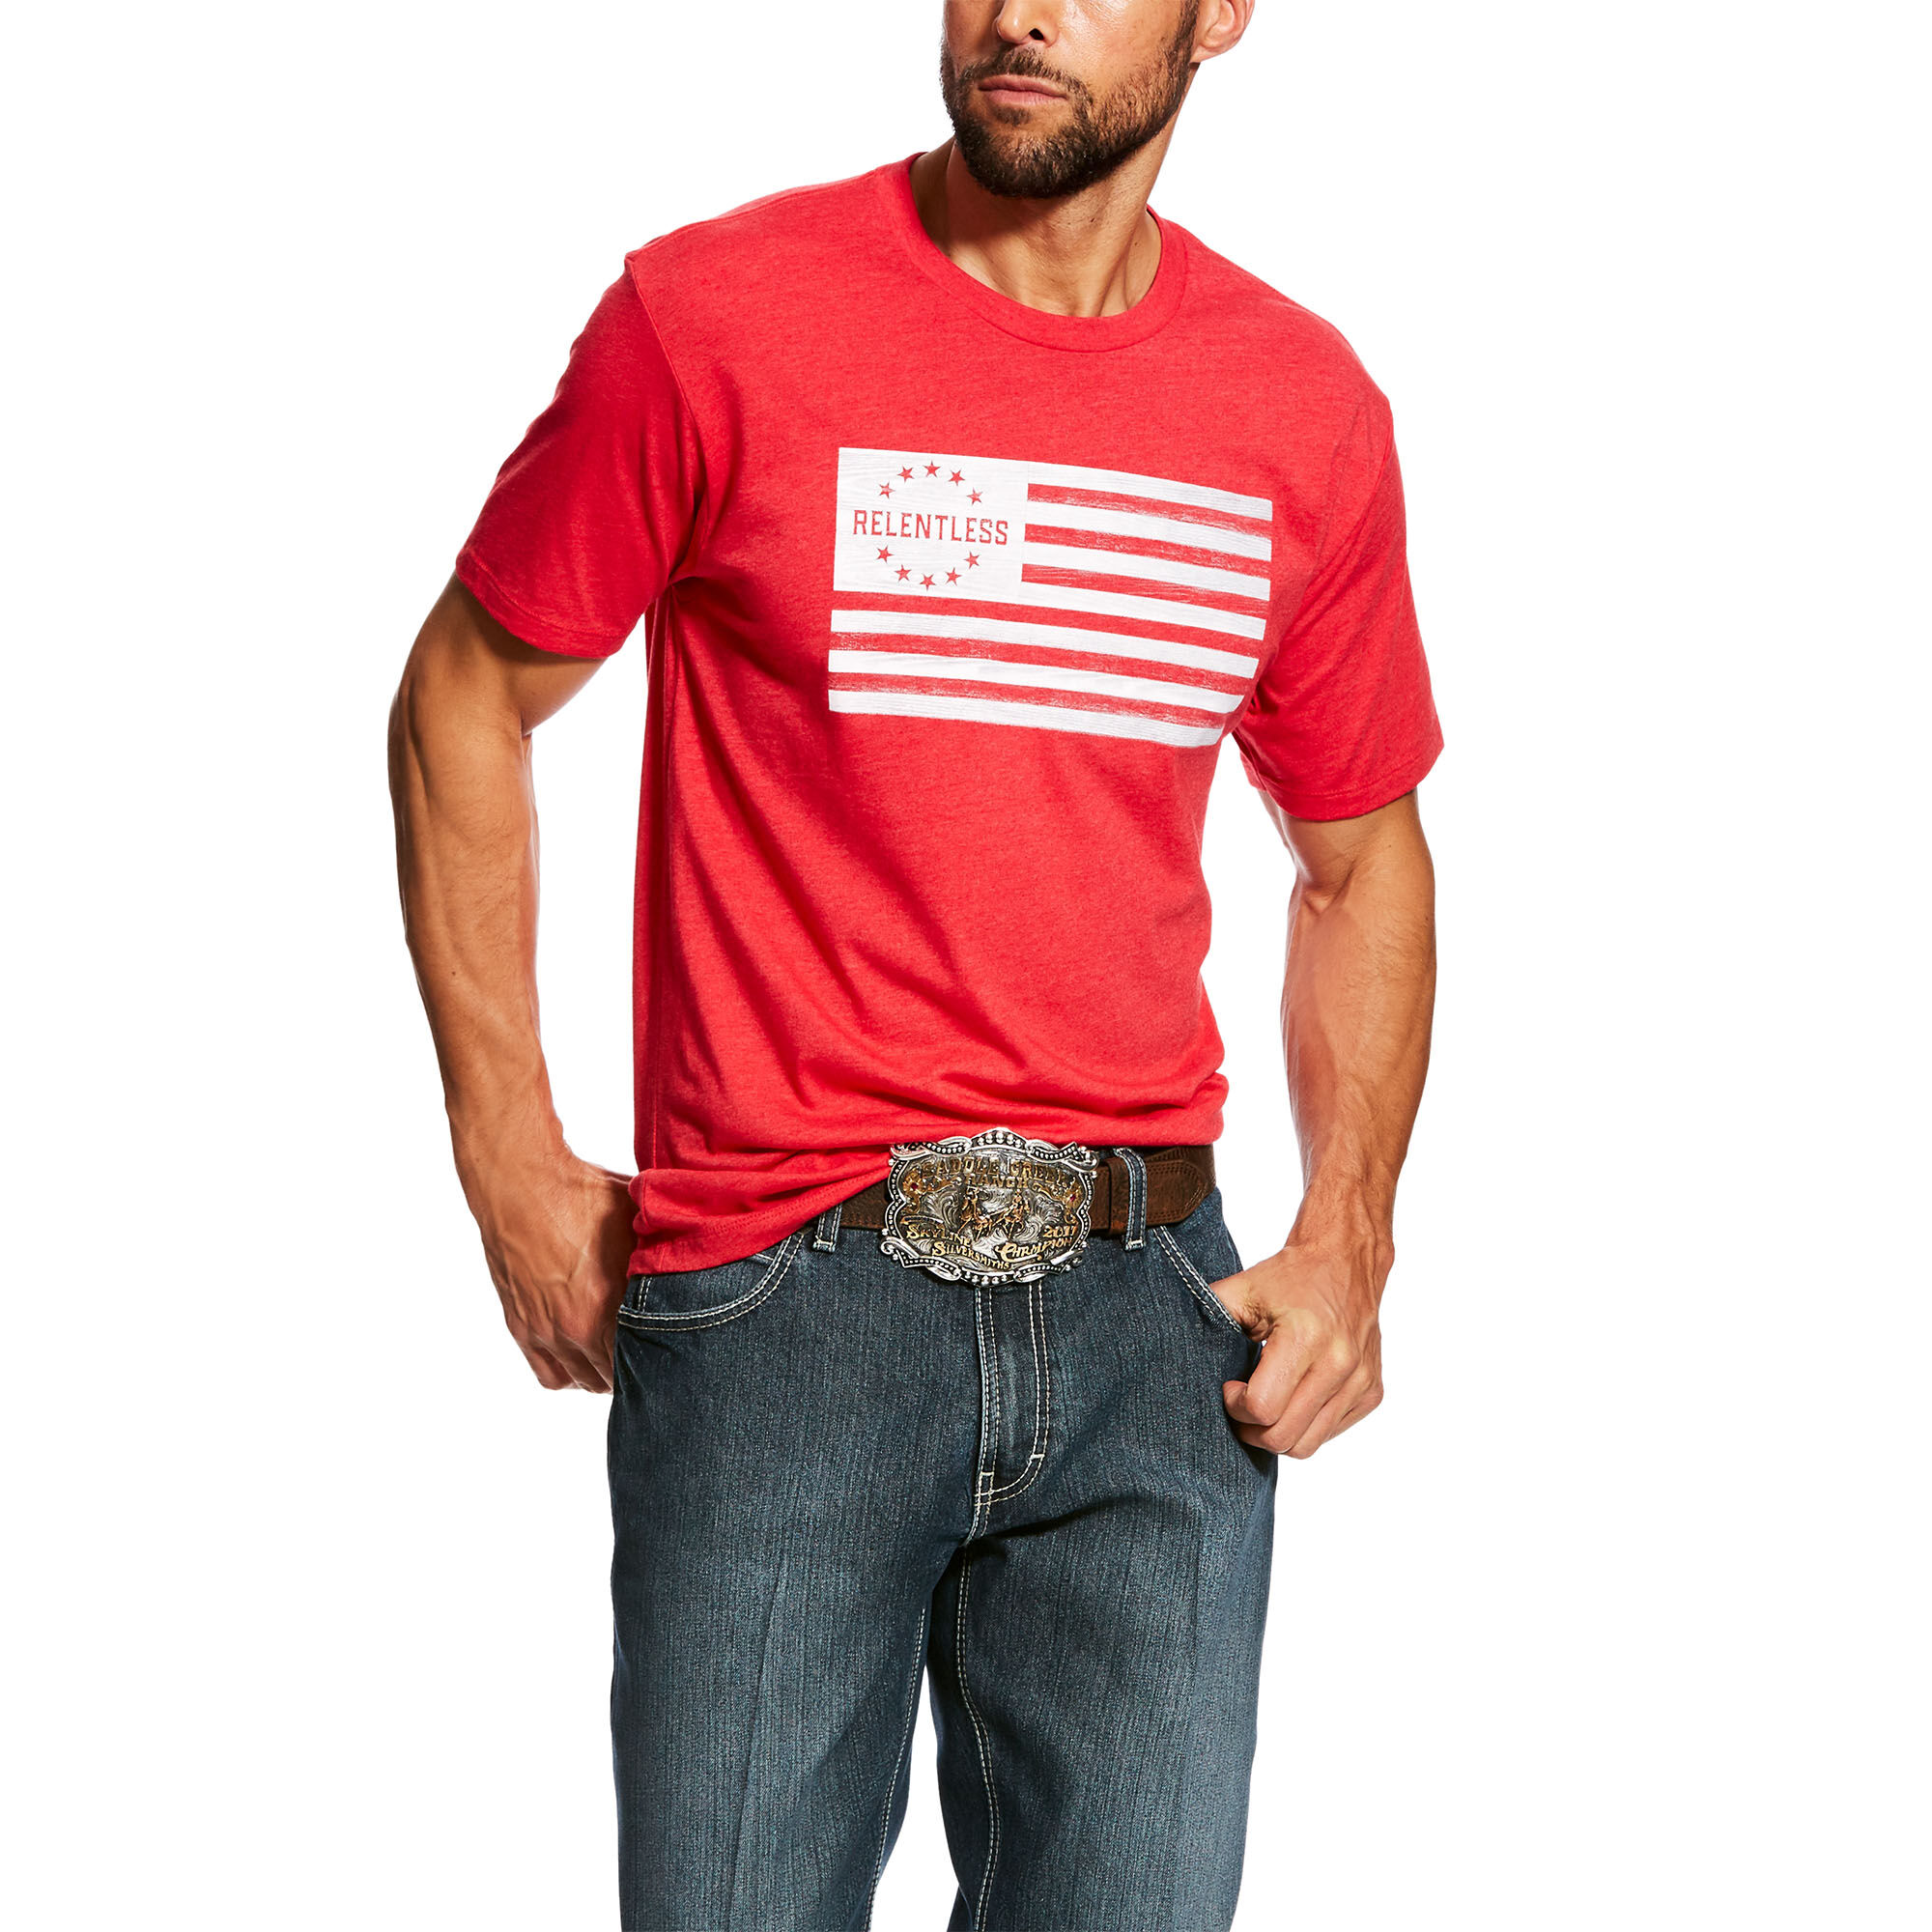 Relentless USA T-Shirt